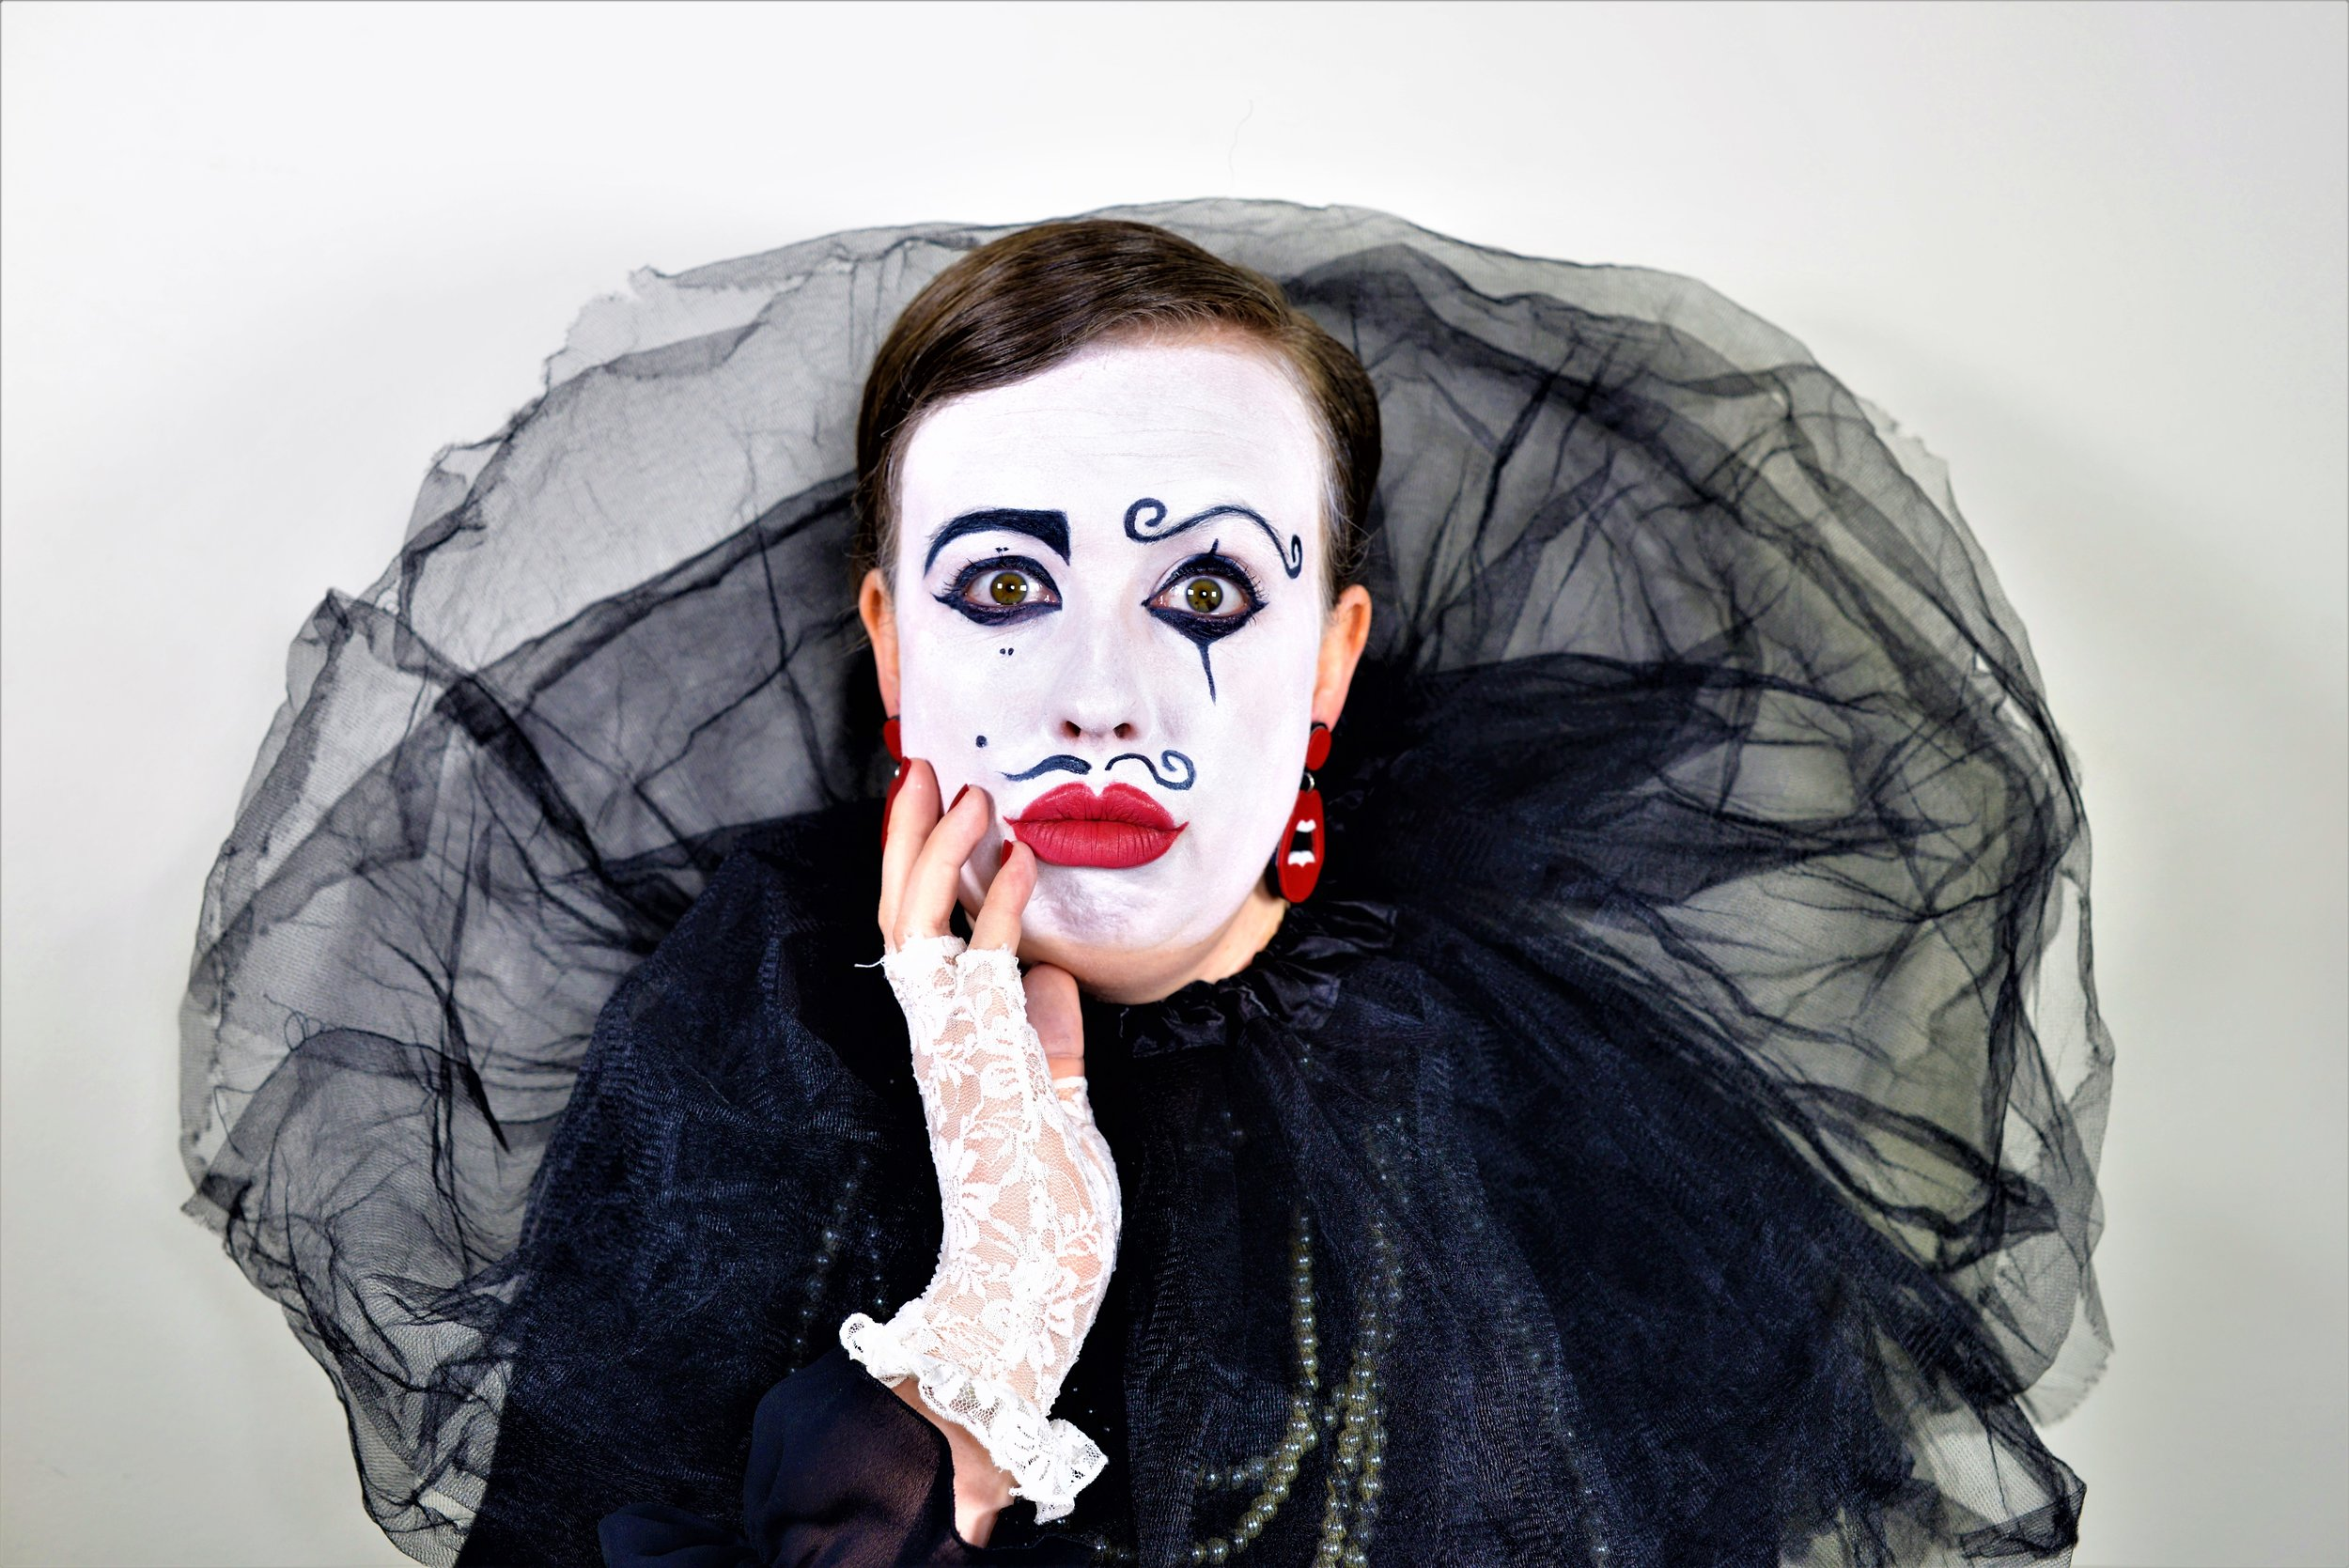 Death and Other Things - Adelaide Fringe Festival 2019